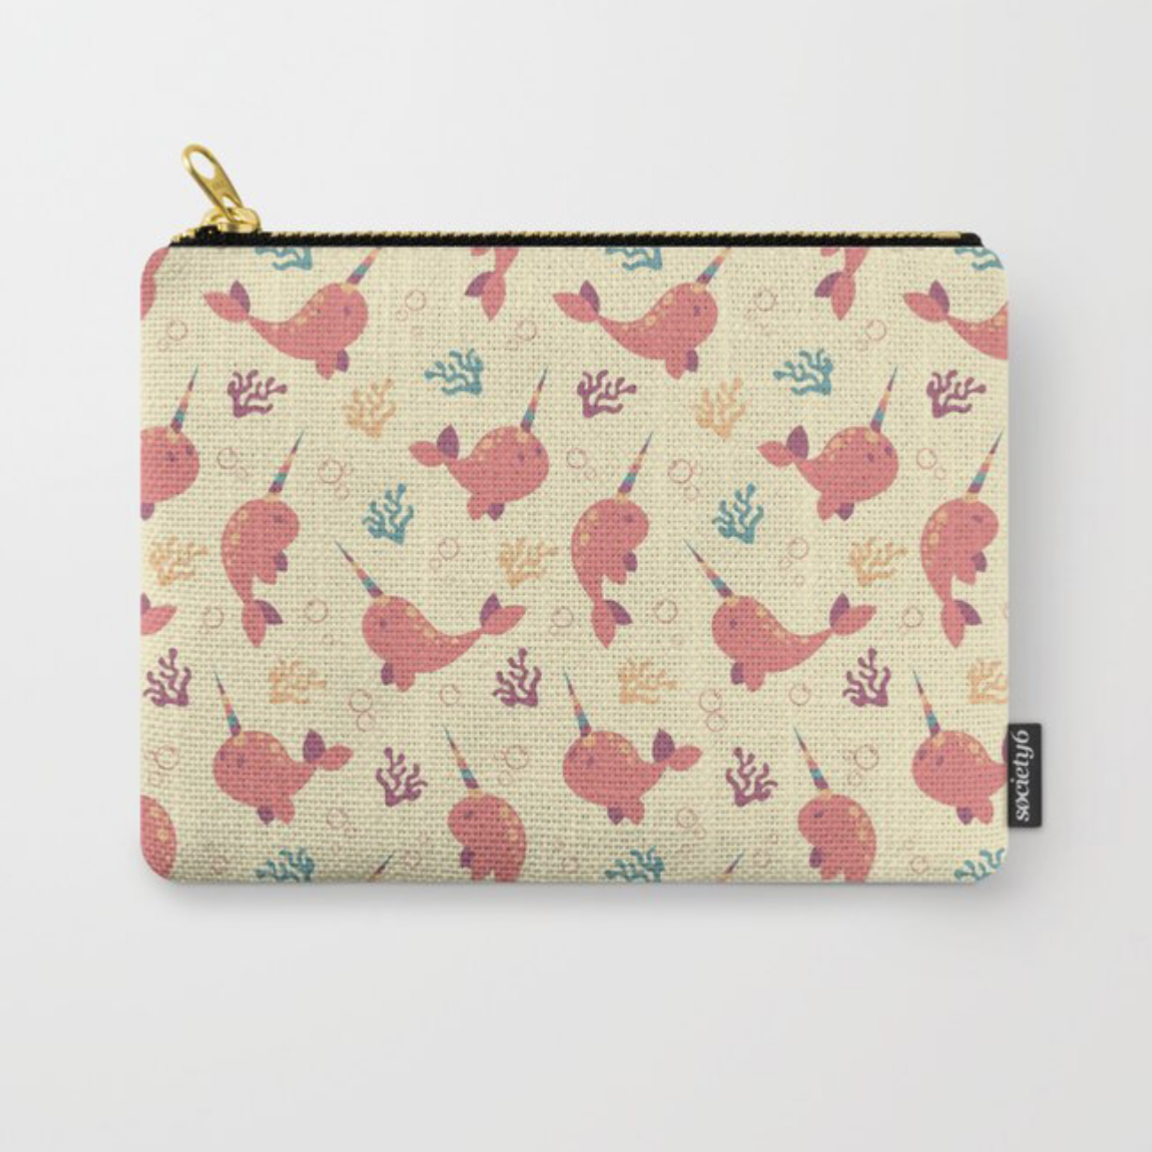 To the Window to the Narwhal carry all pouch from Society6